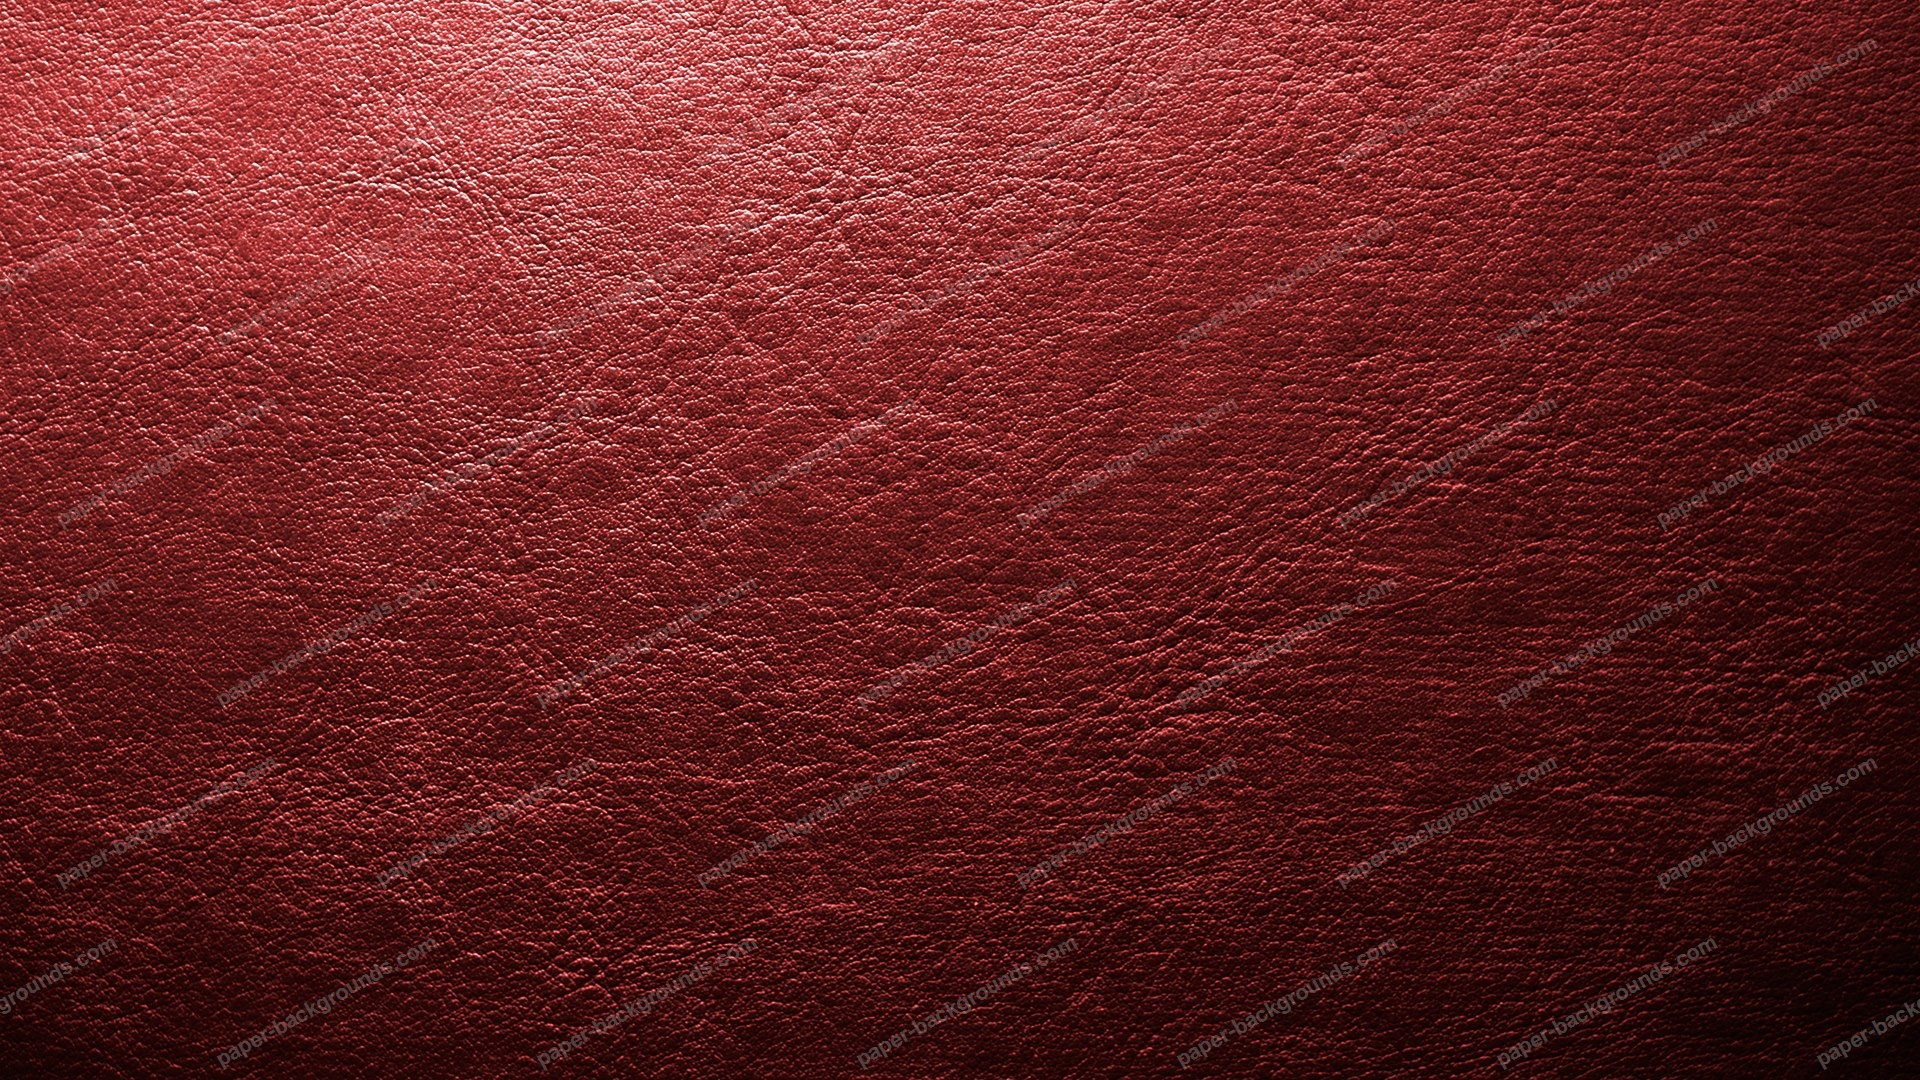 1920x1080 Red Leather Wallpaper